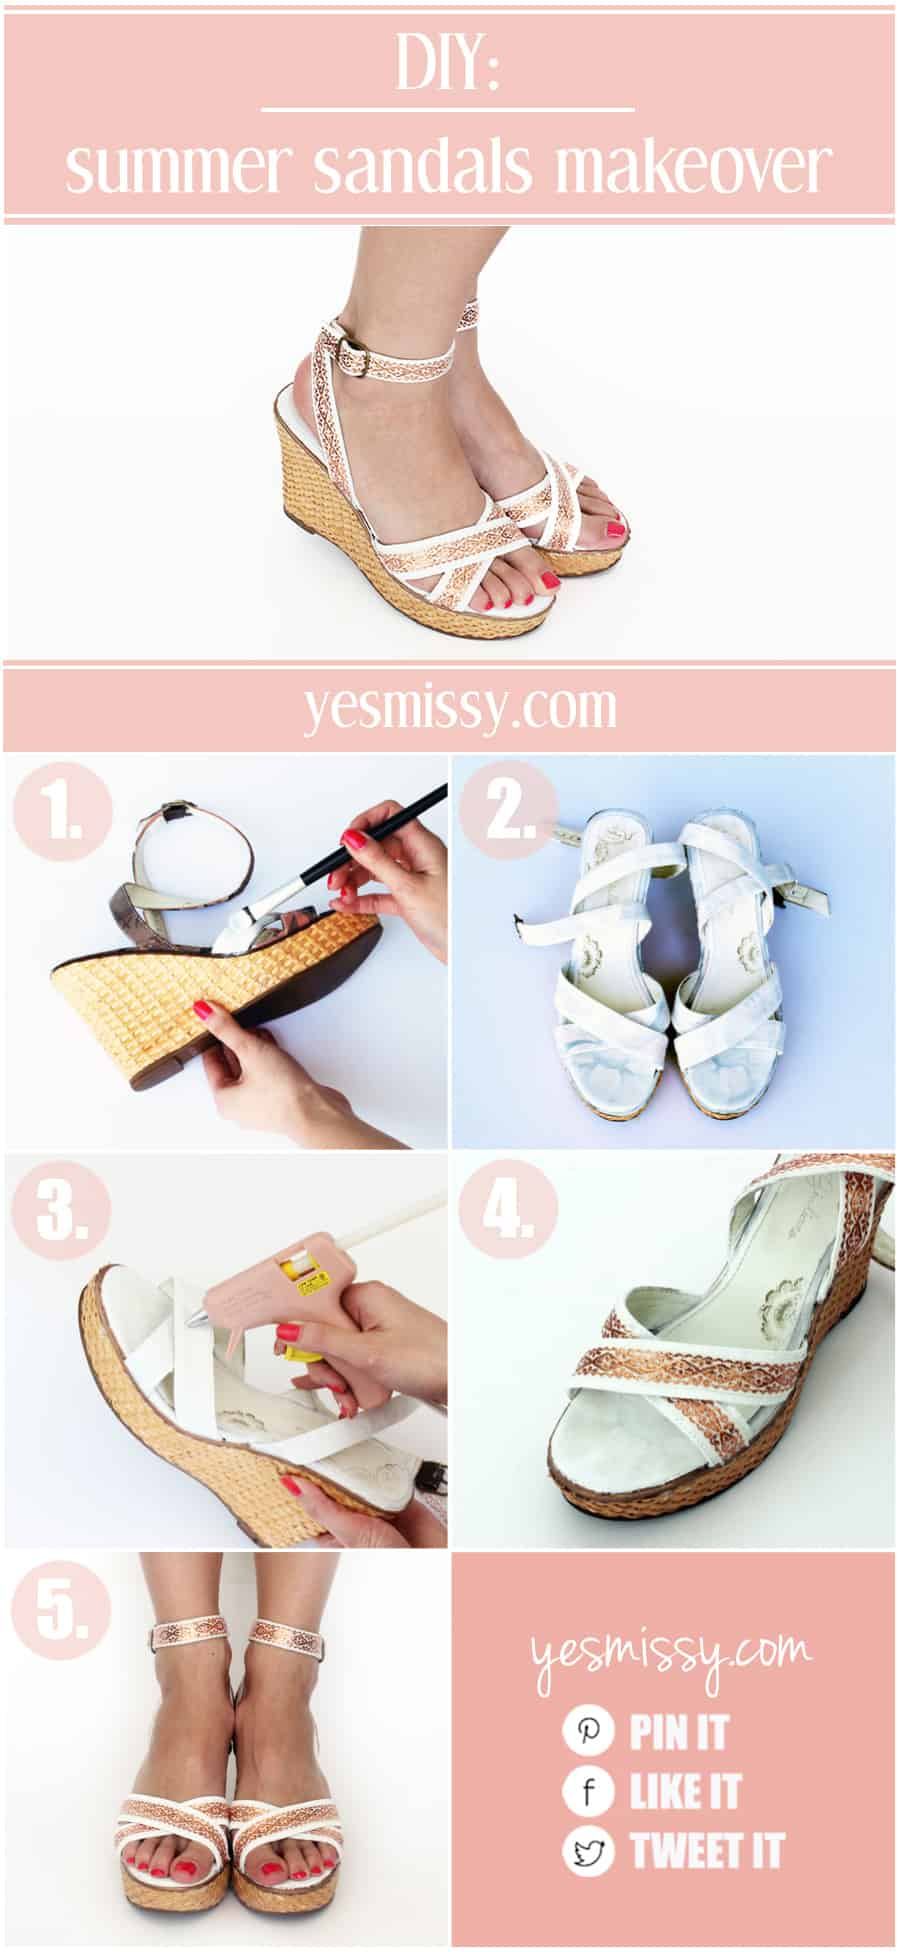 DIY Summer Sandals Makeover